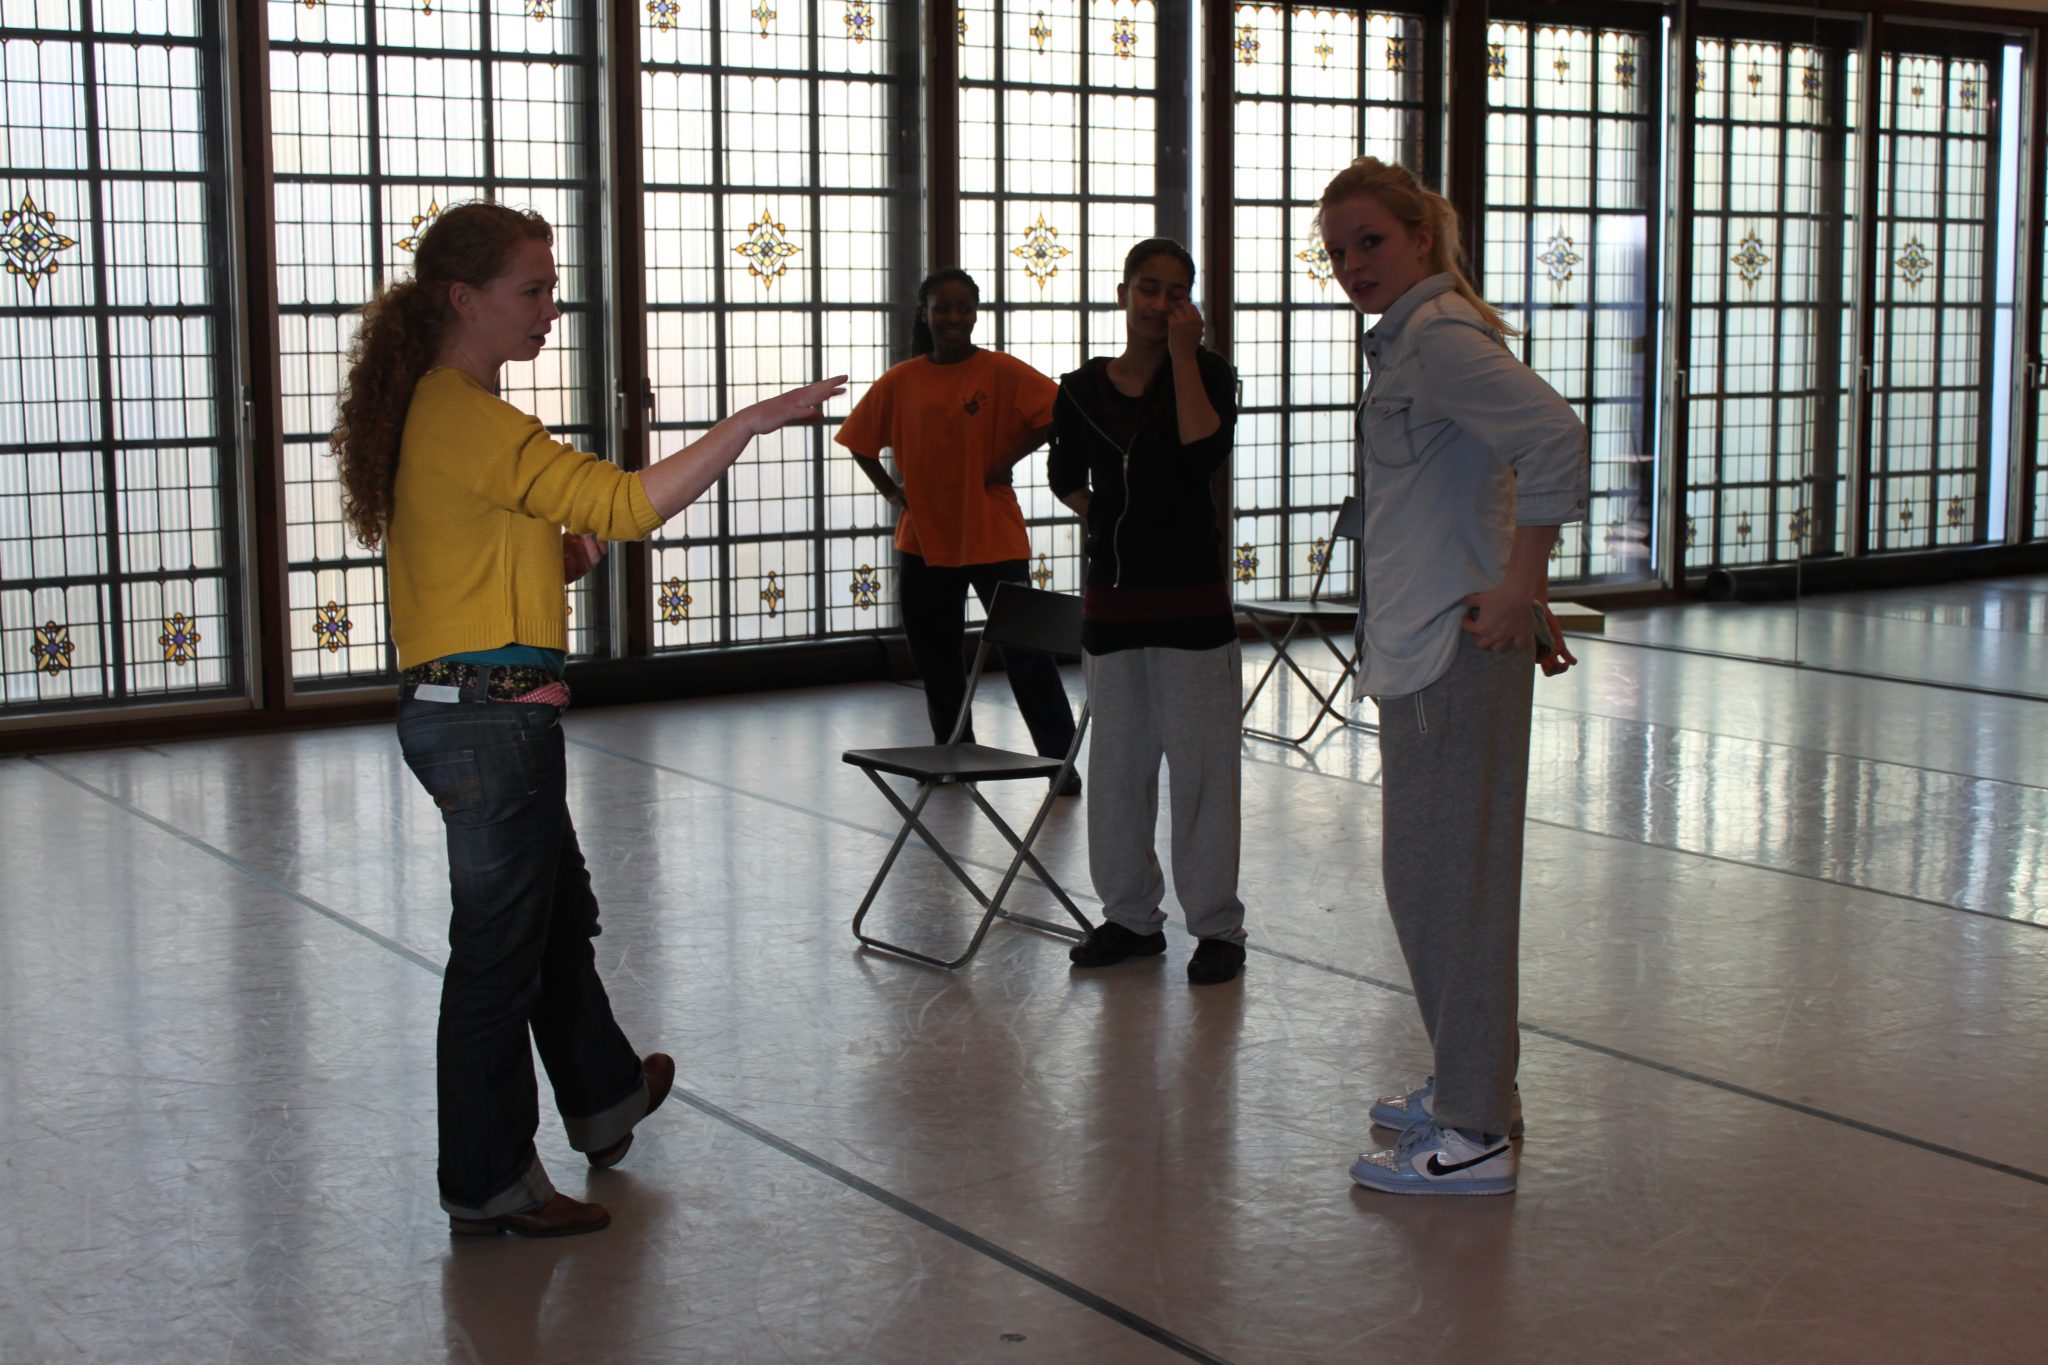 Annemarie de Bruijn teaching